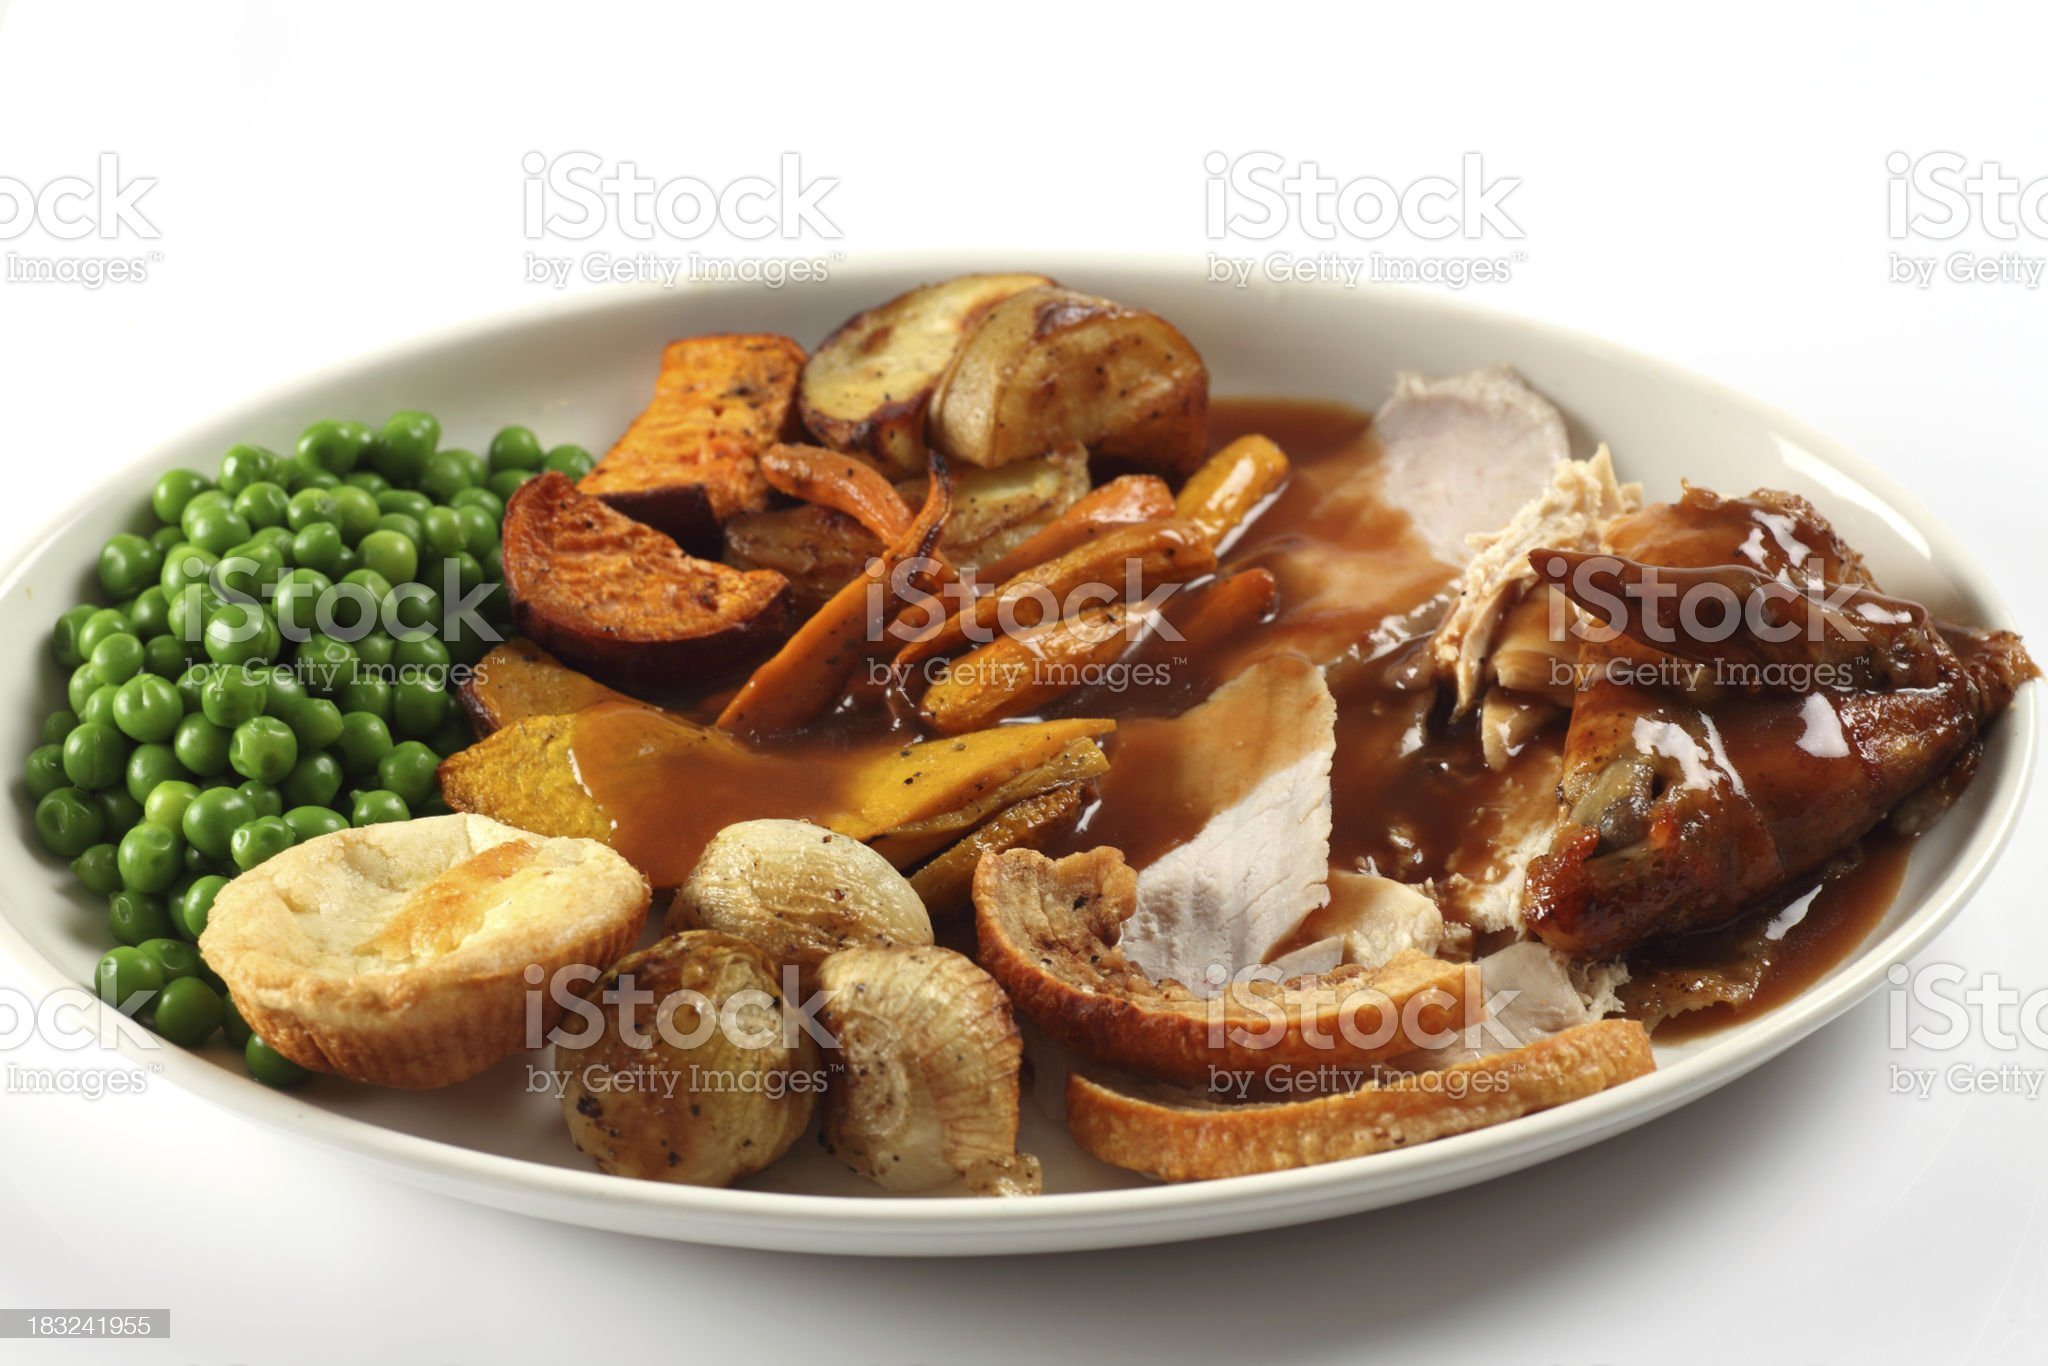 Turkey dinner royalty-free stock photo